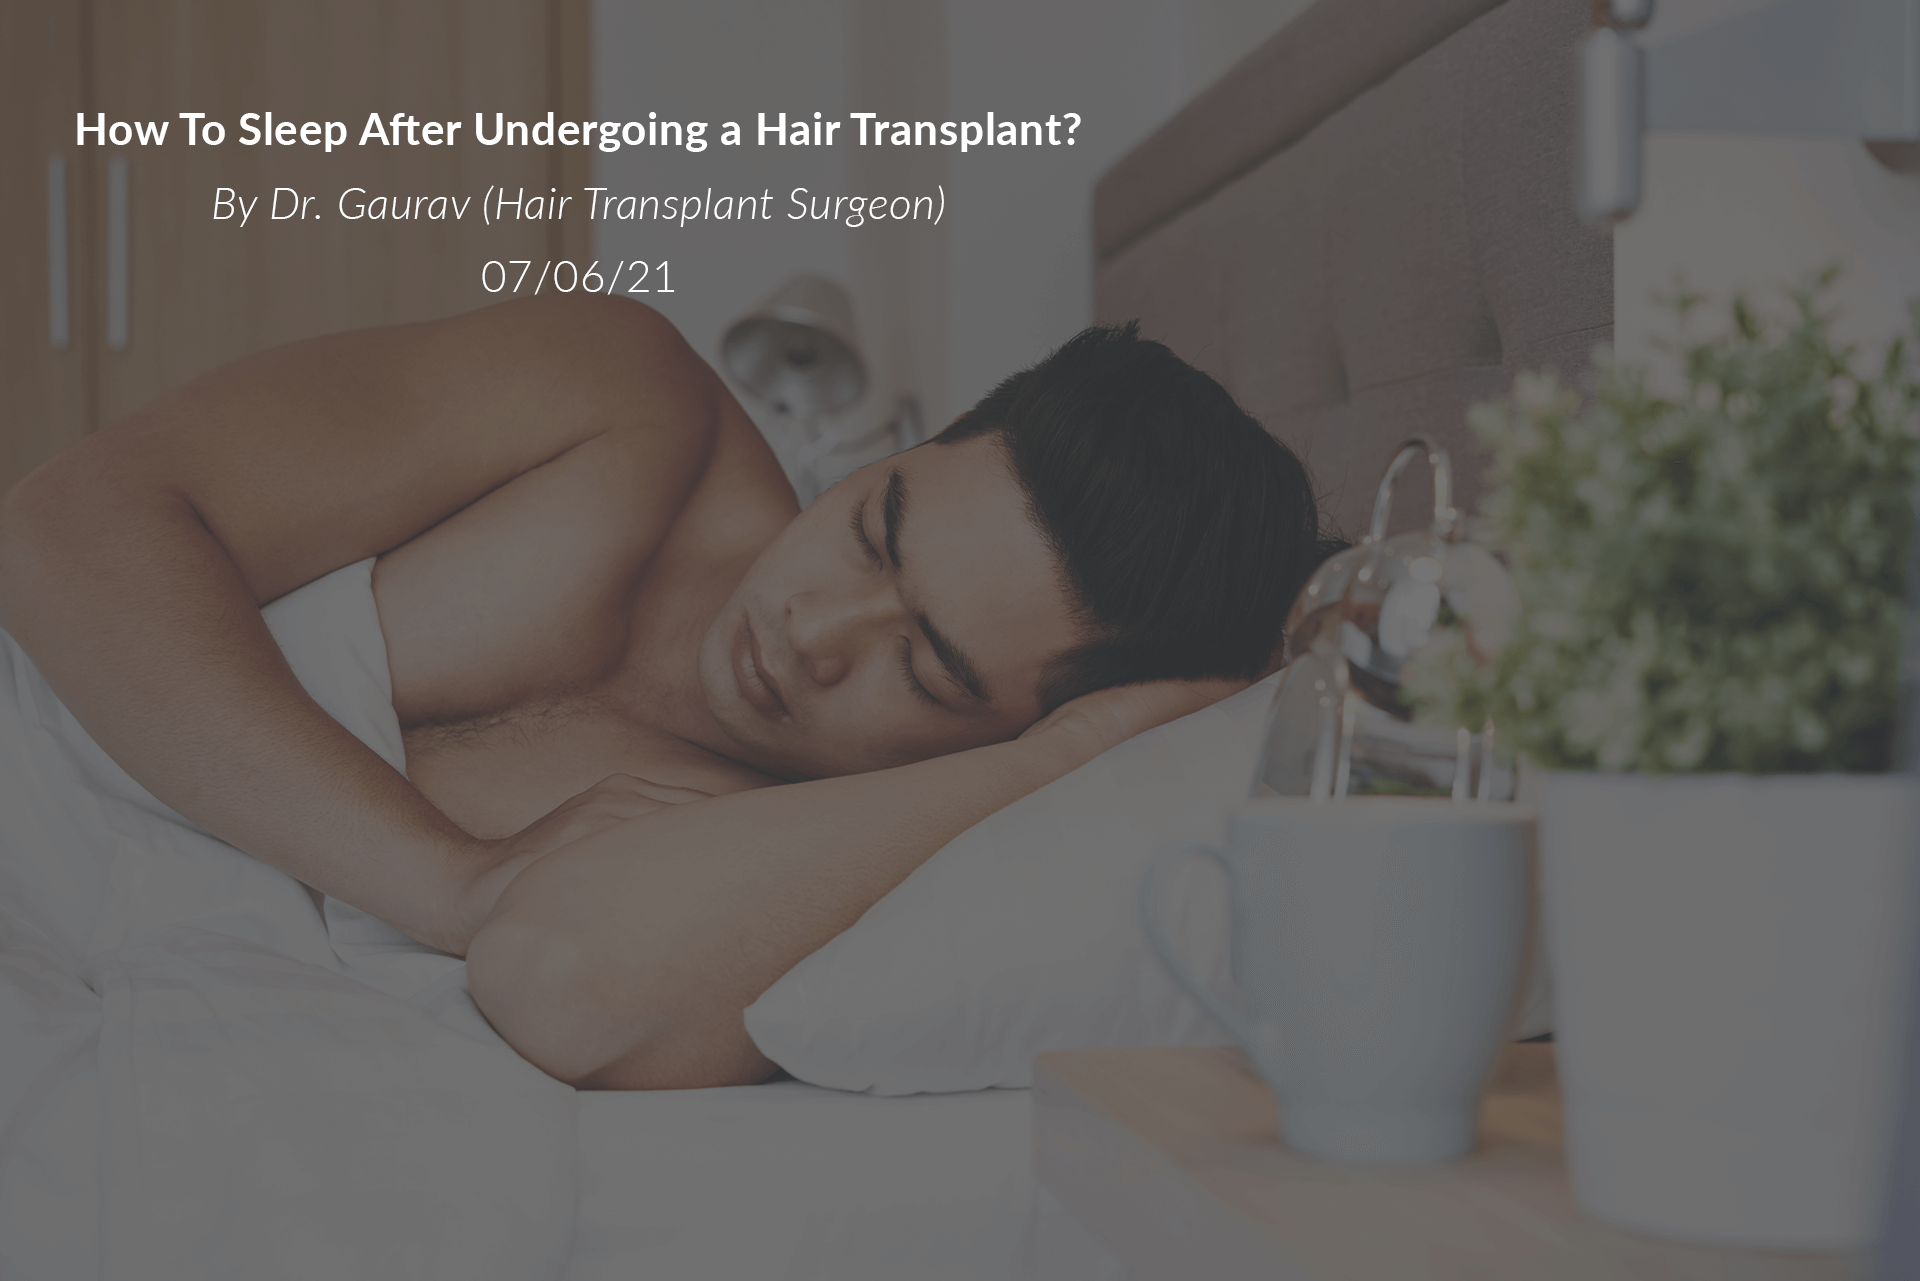 How To Sleep After Undergoing a Hair Transplant?